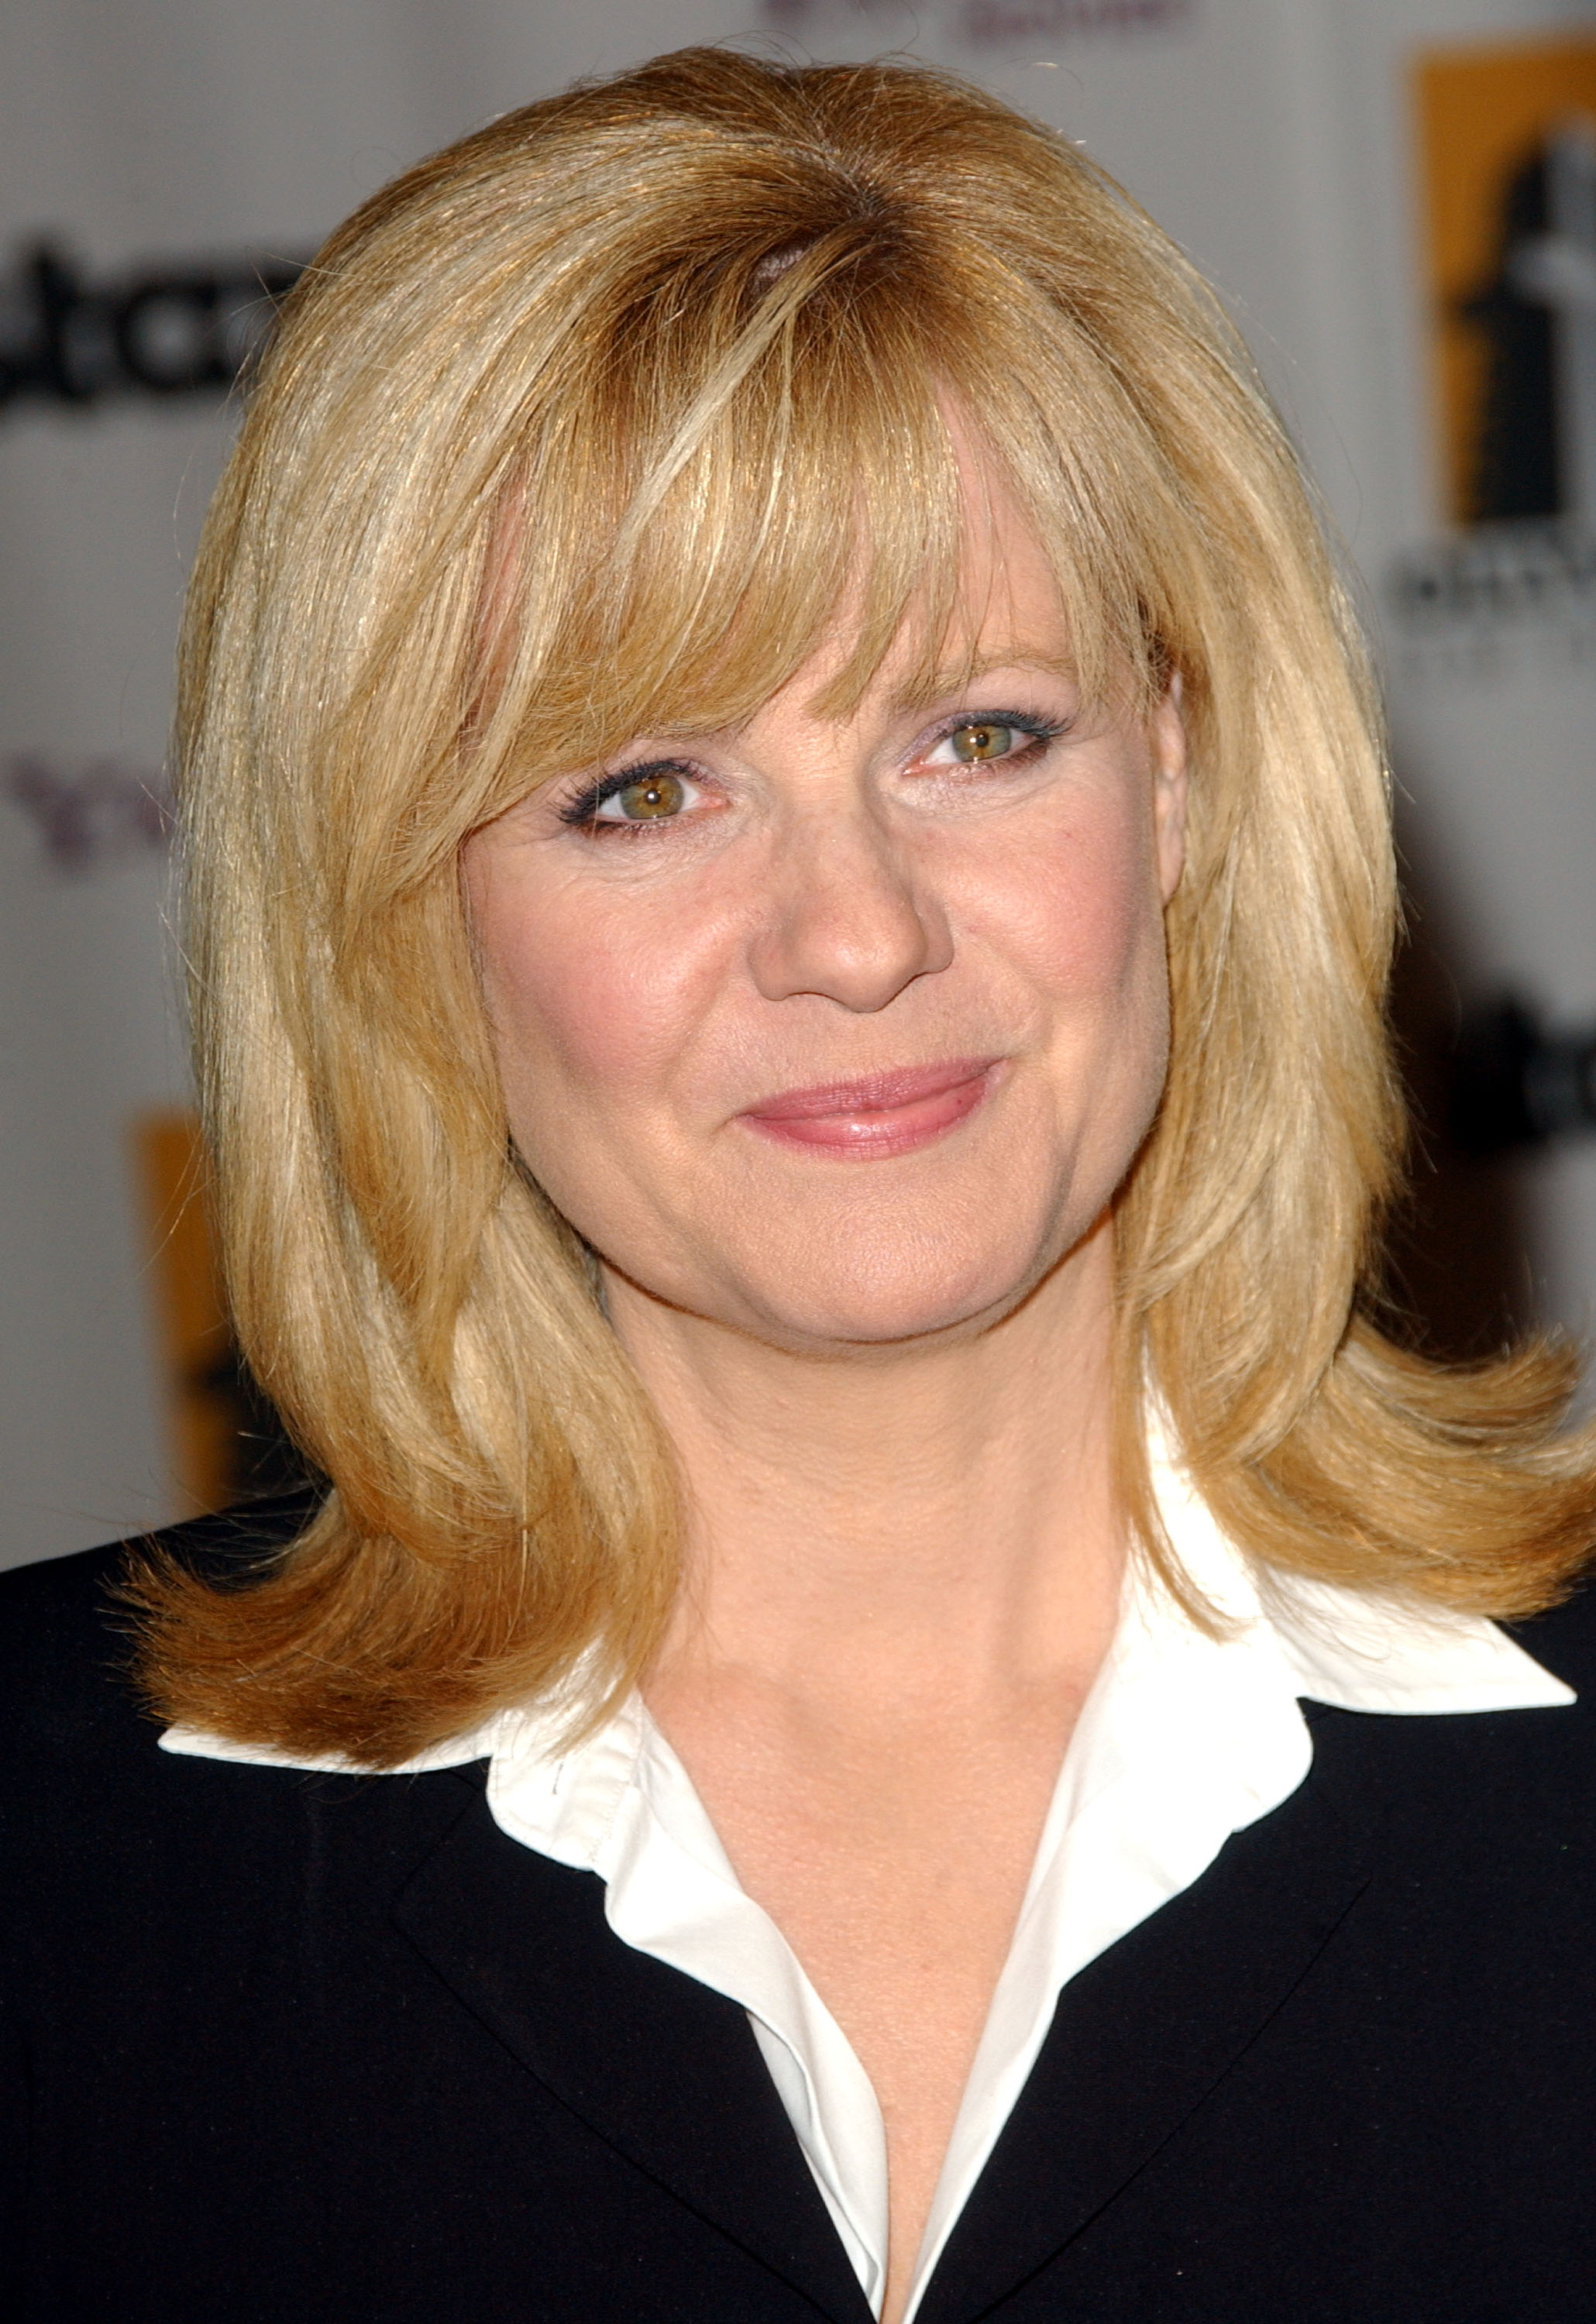 10/27/2008 - Bonnie Hunt - 12th Annual Hollywood Film Festival Award Show - Arrivals - Beverly Hilton Hotel - Beverly Hills, CA. USA - Keywords: Bonnie Hunt - False - - Photo Credit: Albert L. Ortega / PR Photos - Contact (1-866-551-7827)